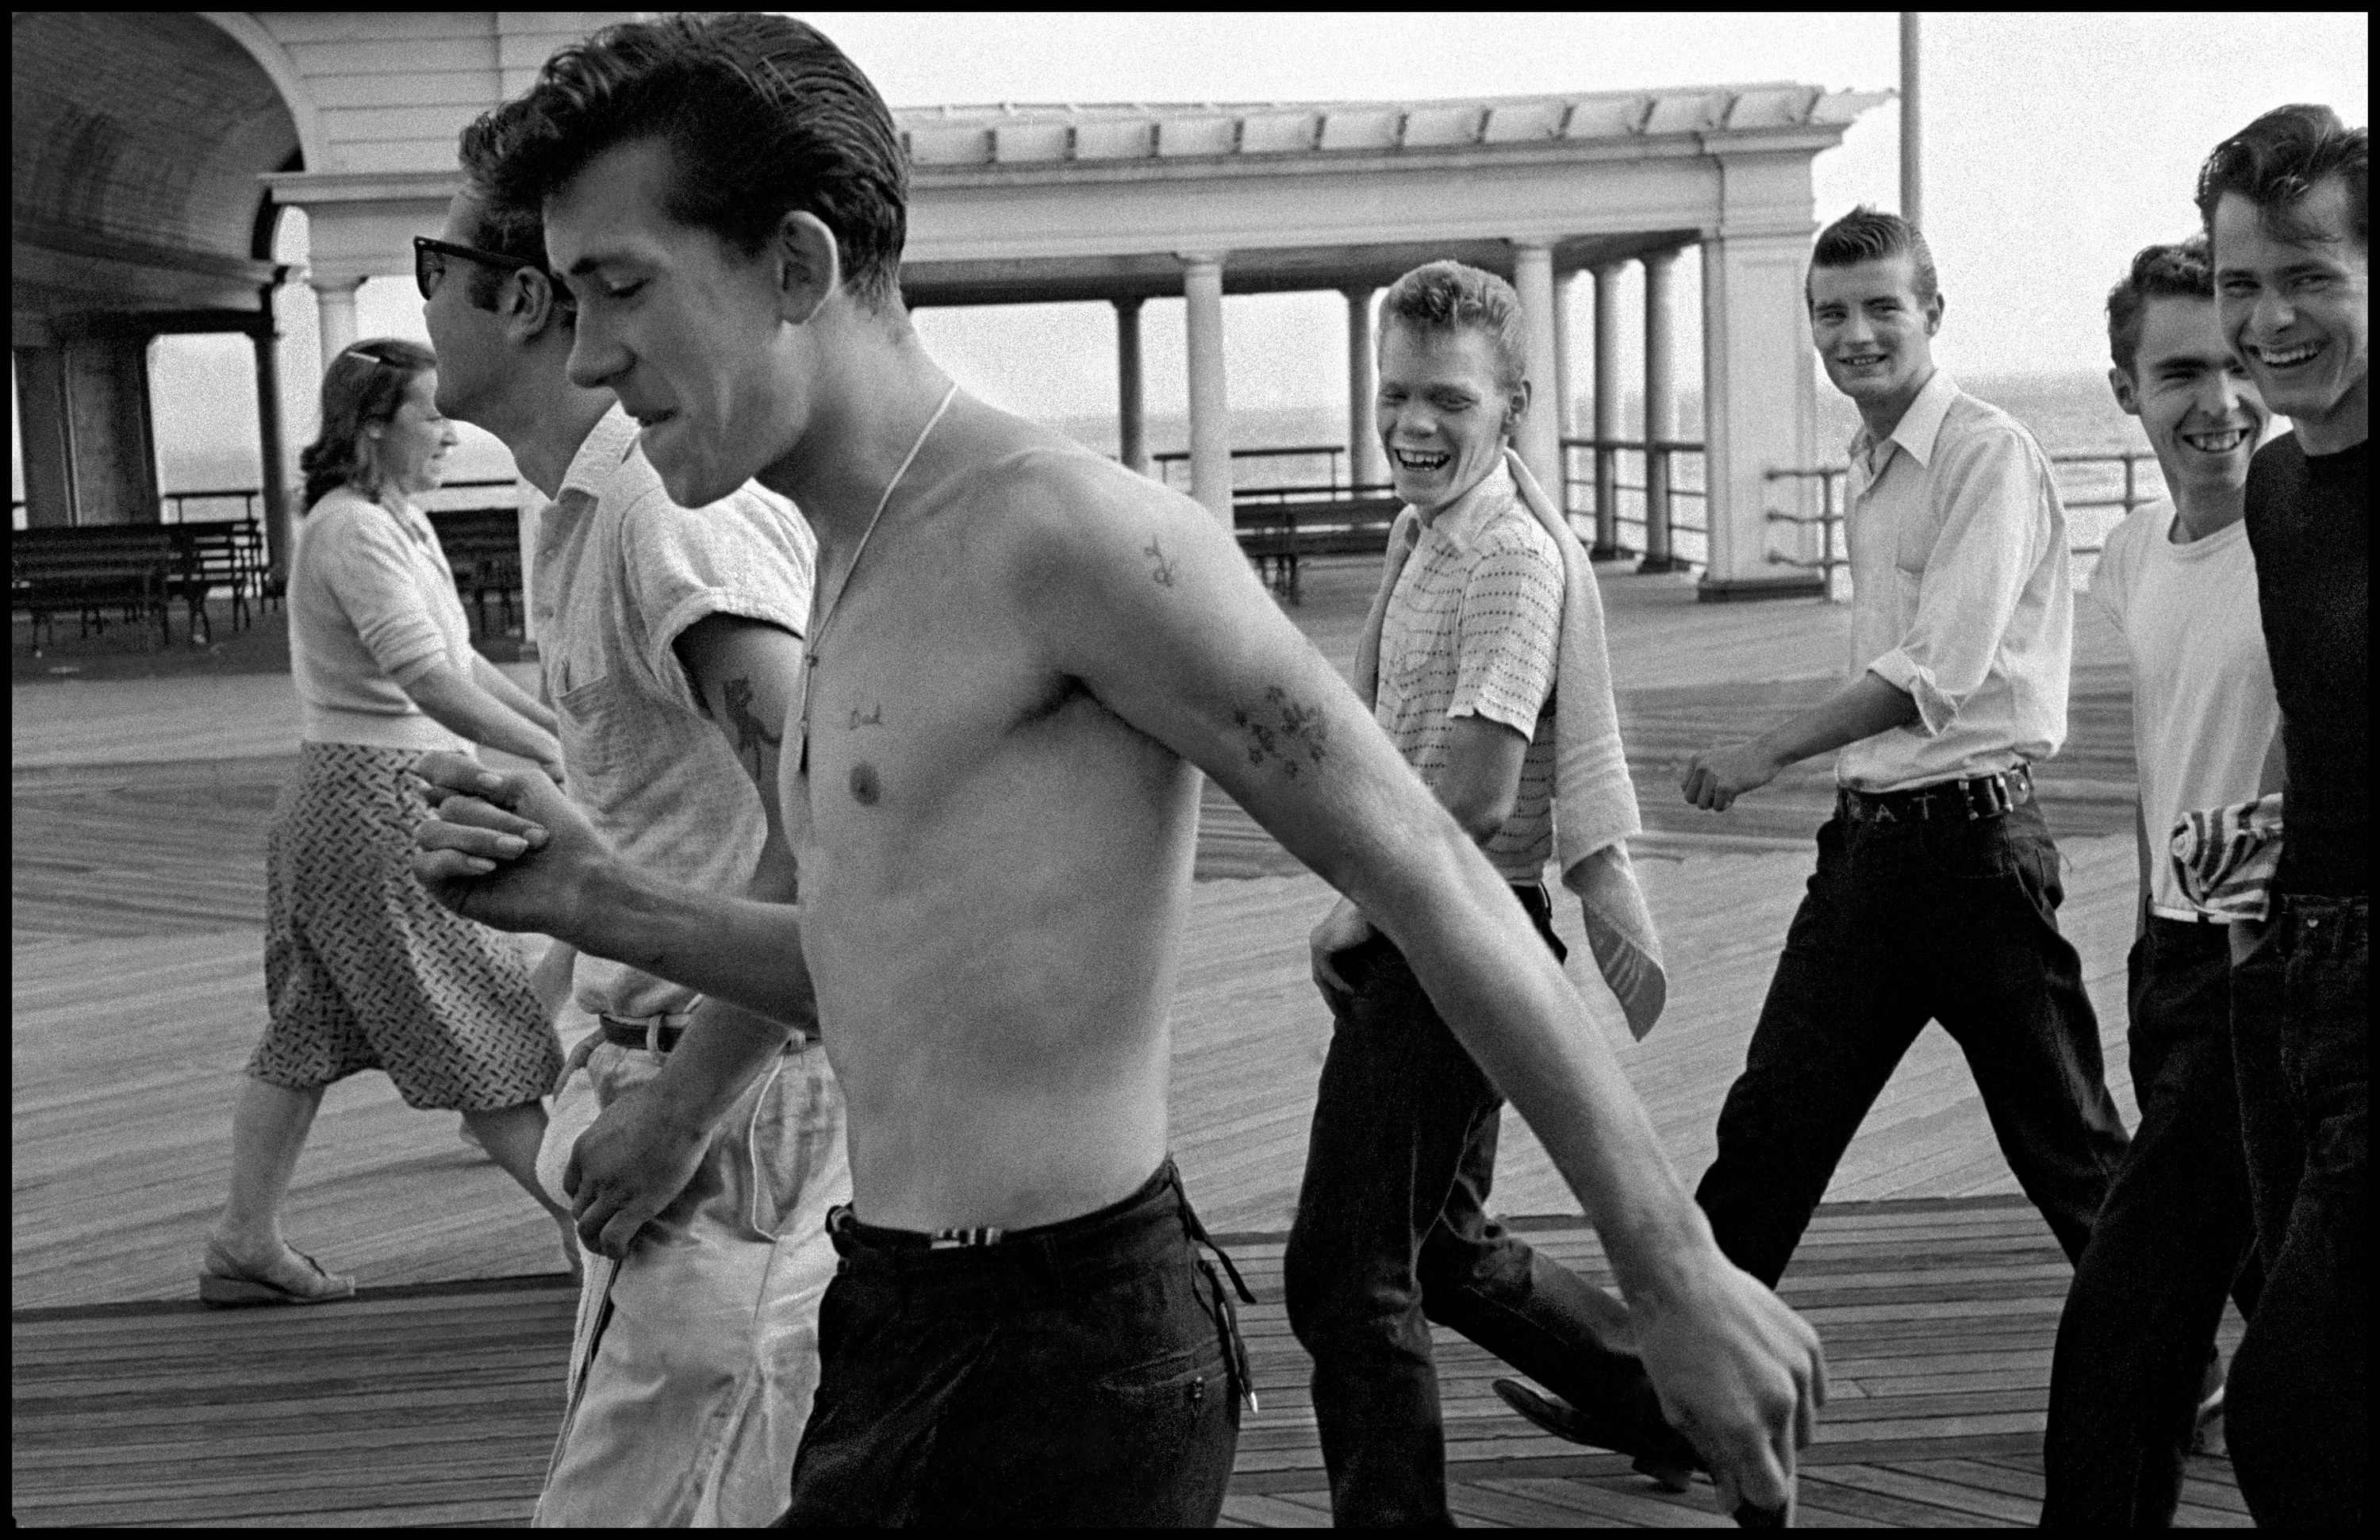 A gang of friends, one with his shirt off and all with ducktail hairdos, on the Coney Island boardwalk in the 1950s